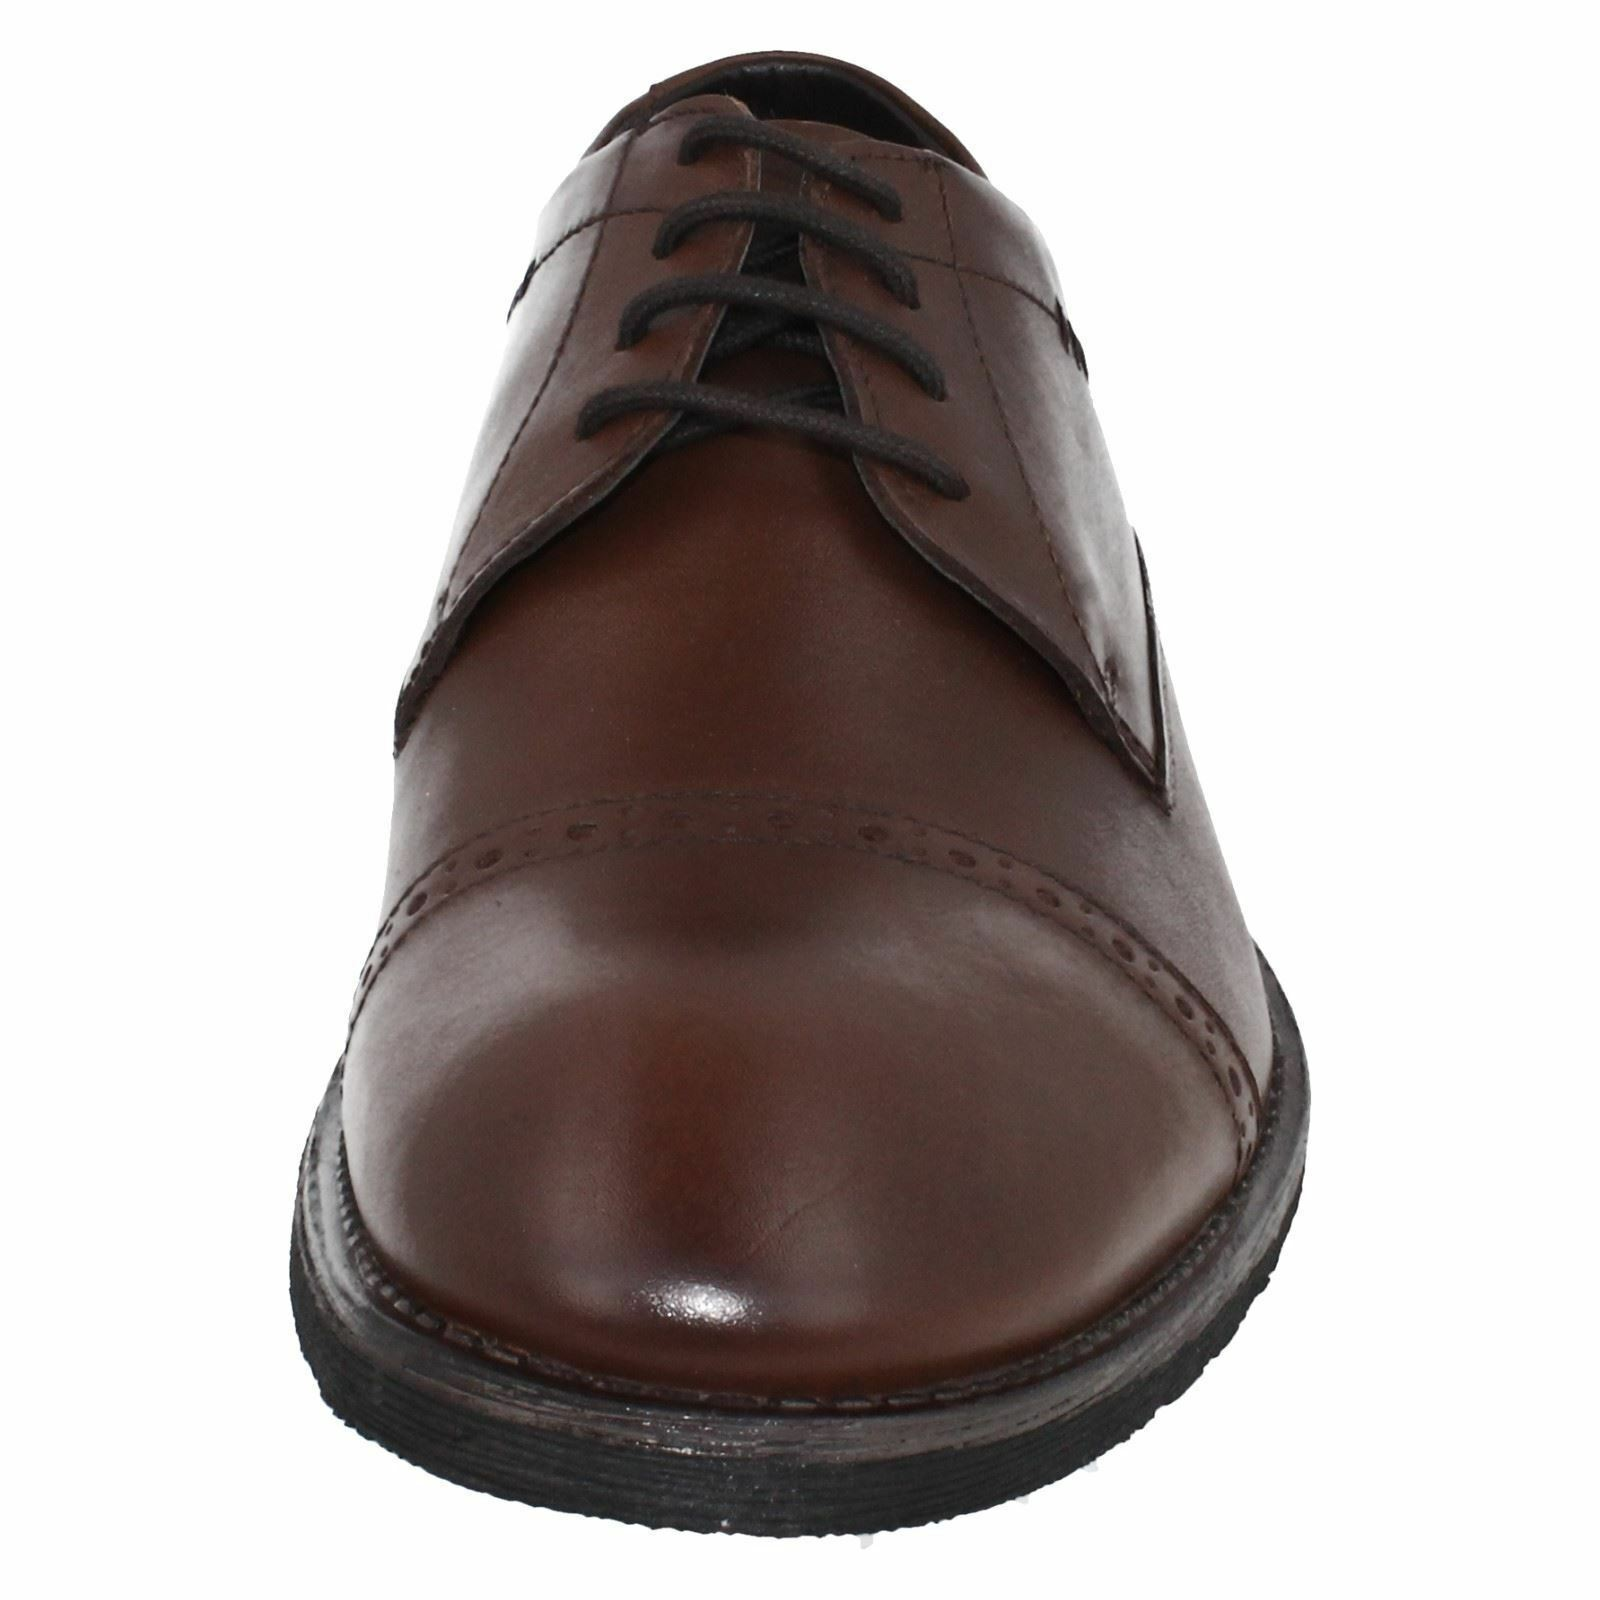 Mens braun Leather Lace schuhe Up Hush Puppies Formal schuhe Lace Craig Luganda b52be7